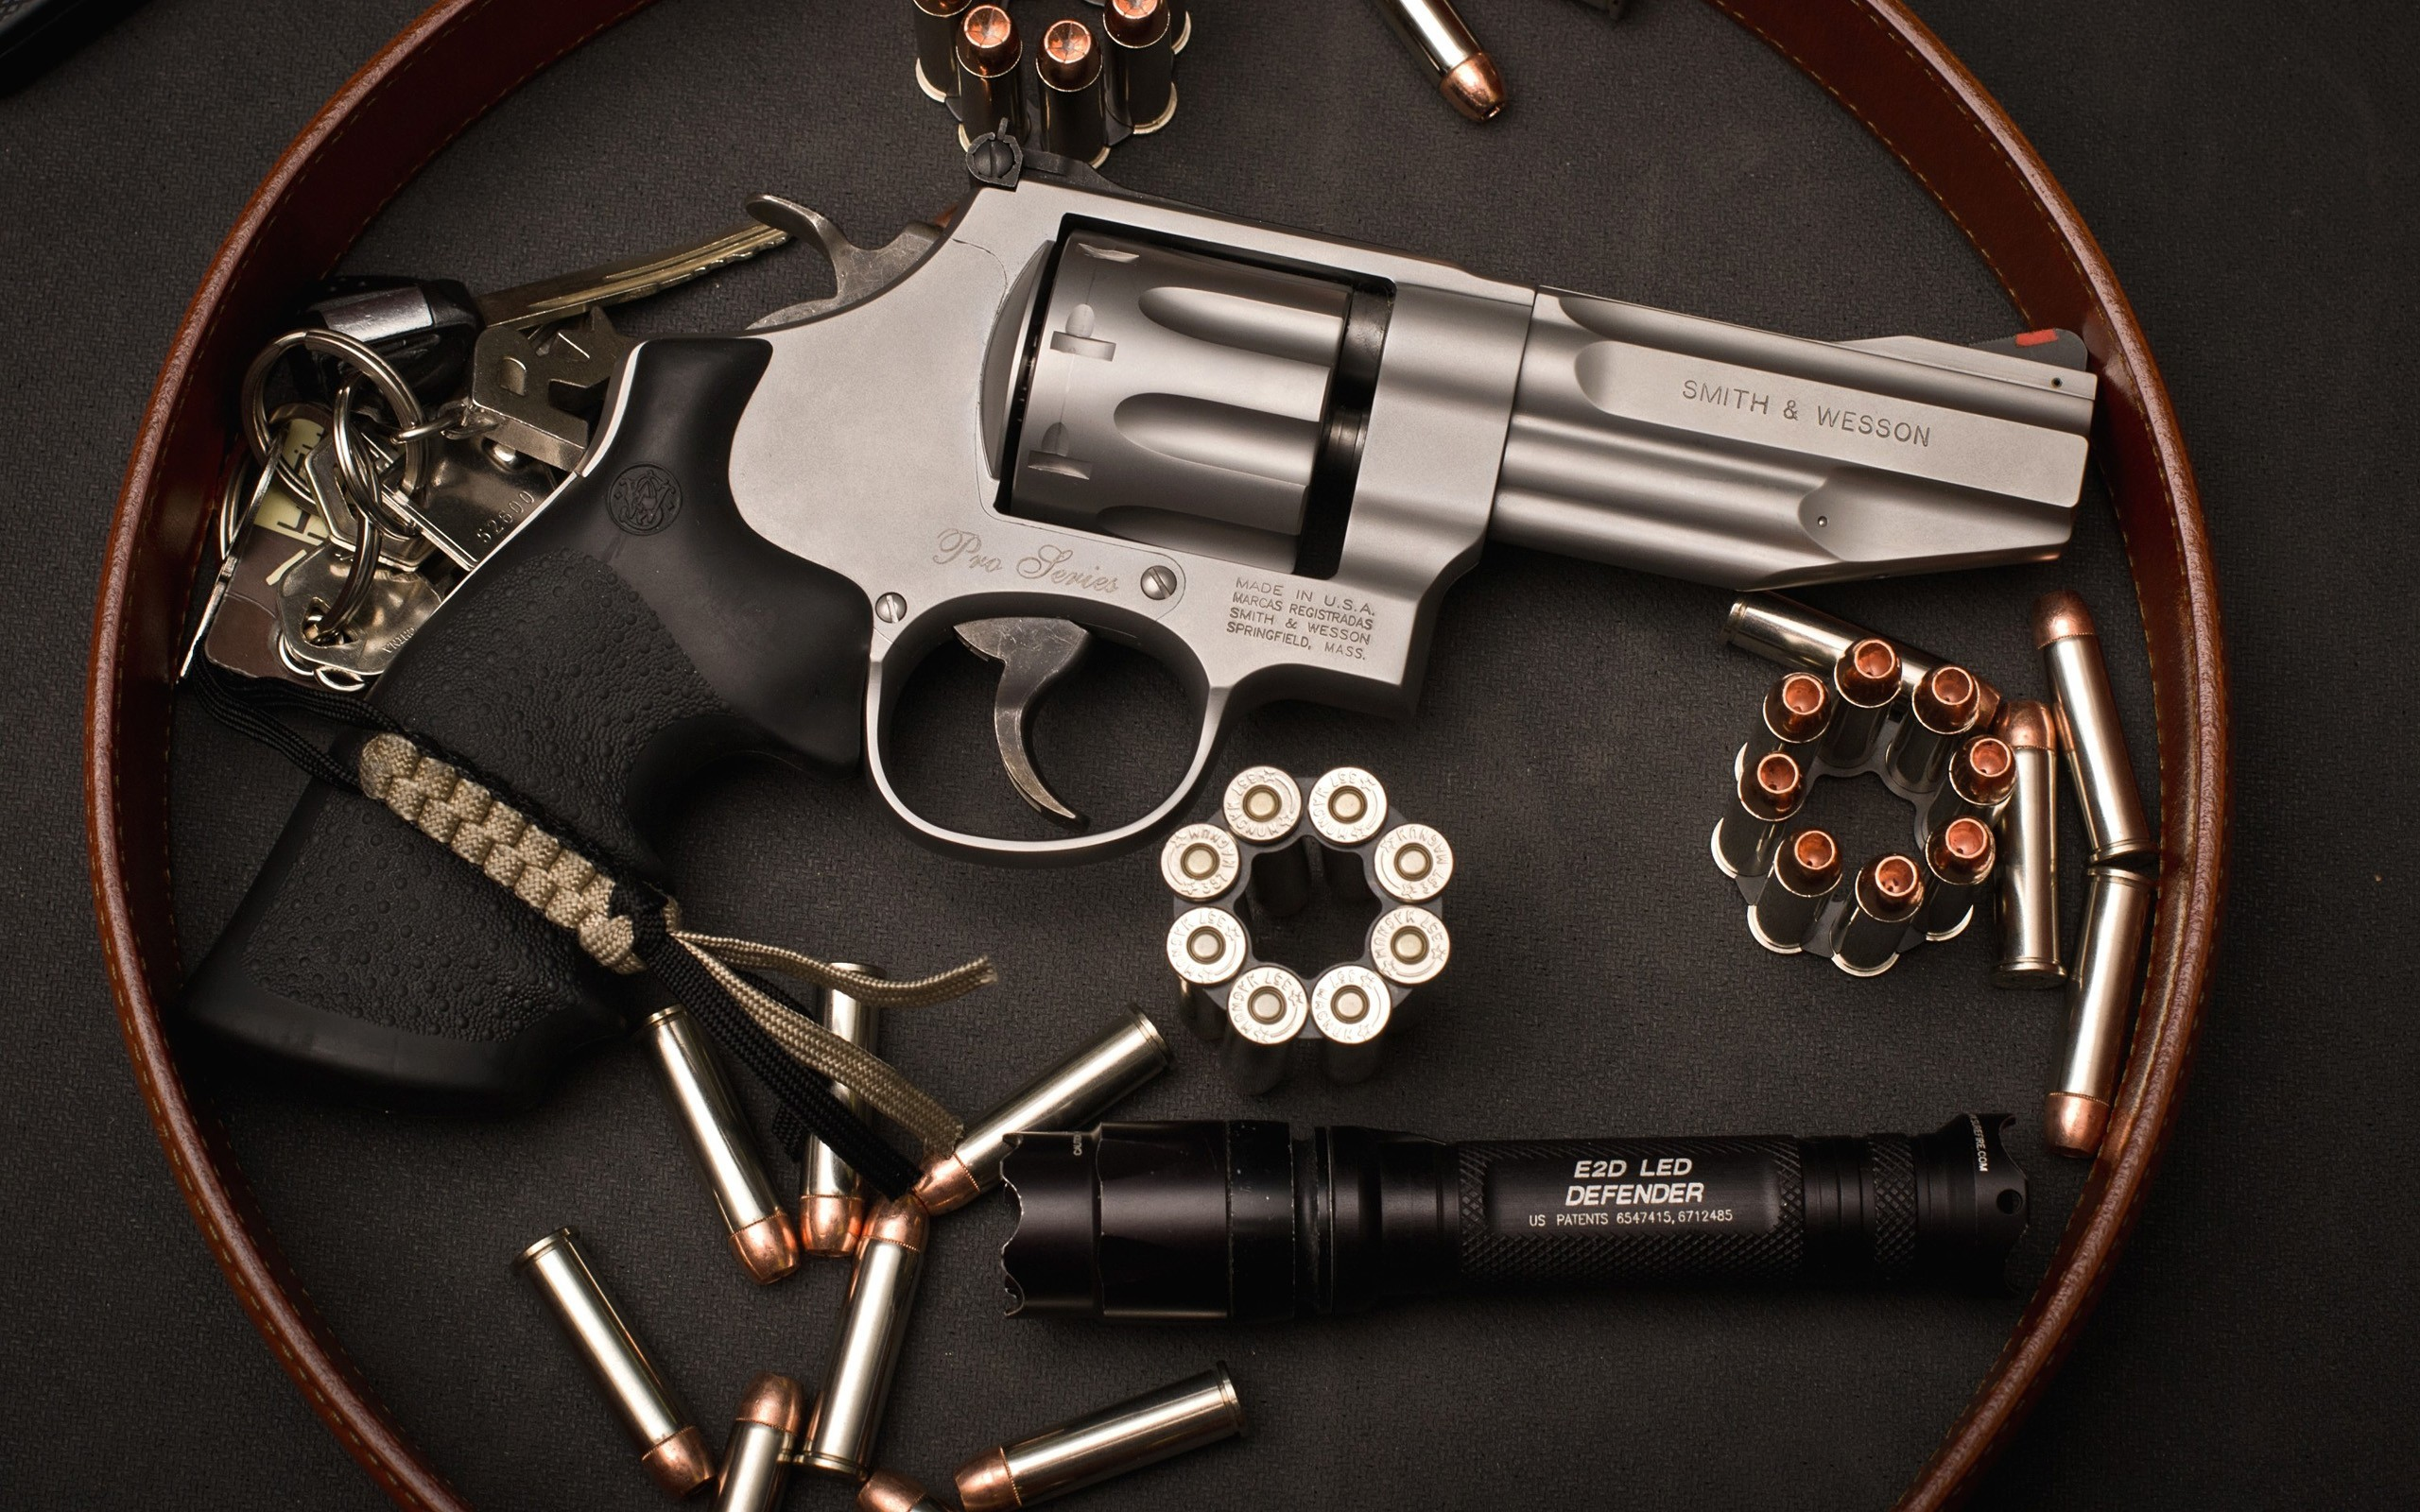 2560x1600 SW M-627 | Guns, Firearms | Pinterest | Revolvers, Hd wallpaper and  Wallpaper